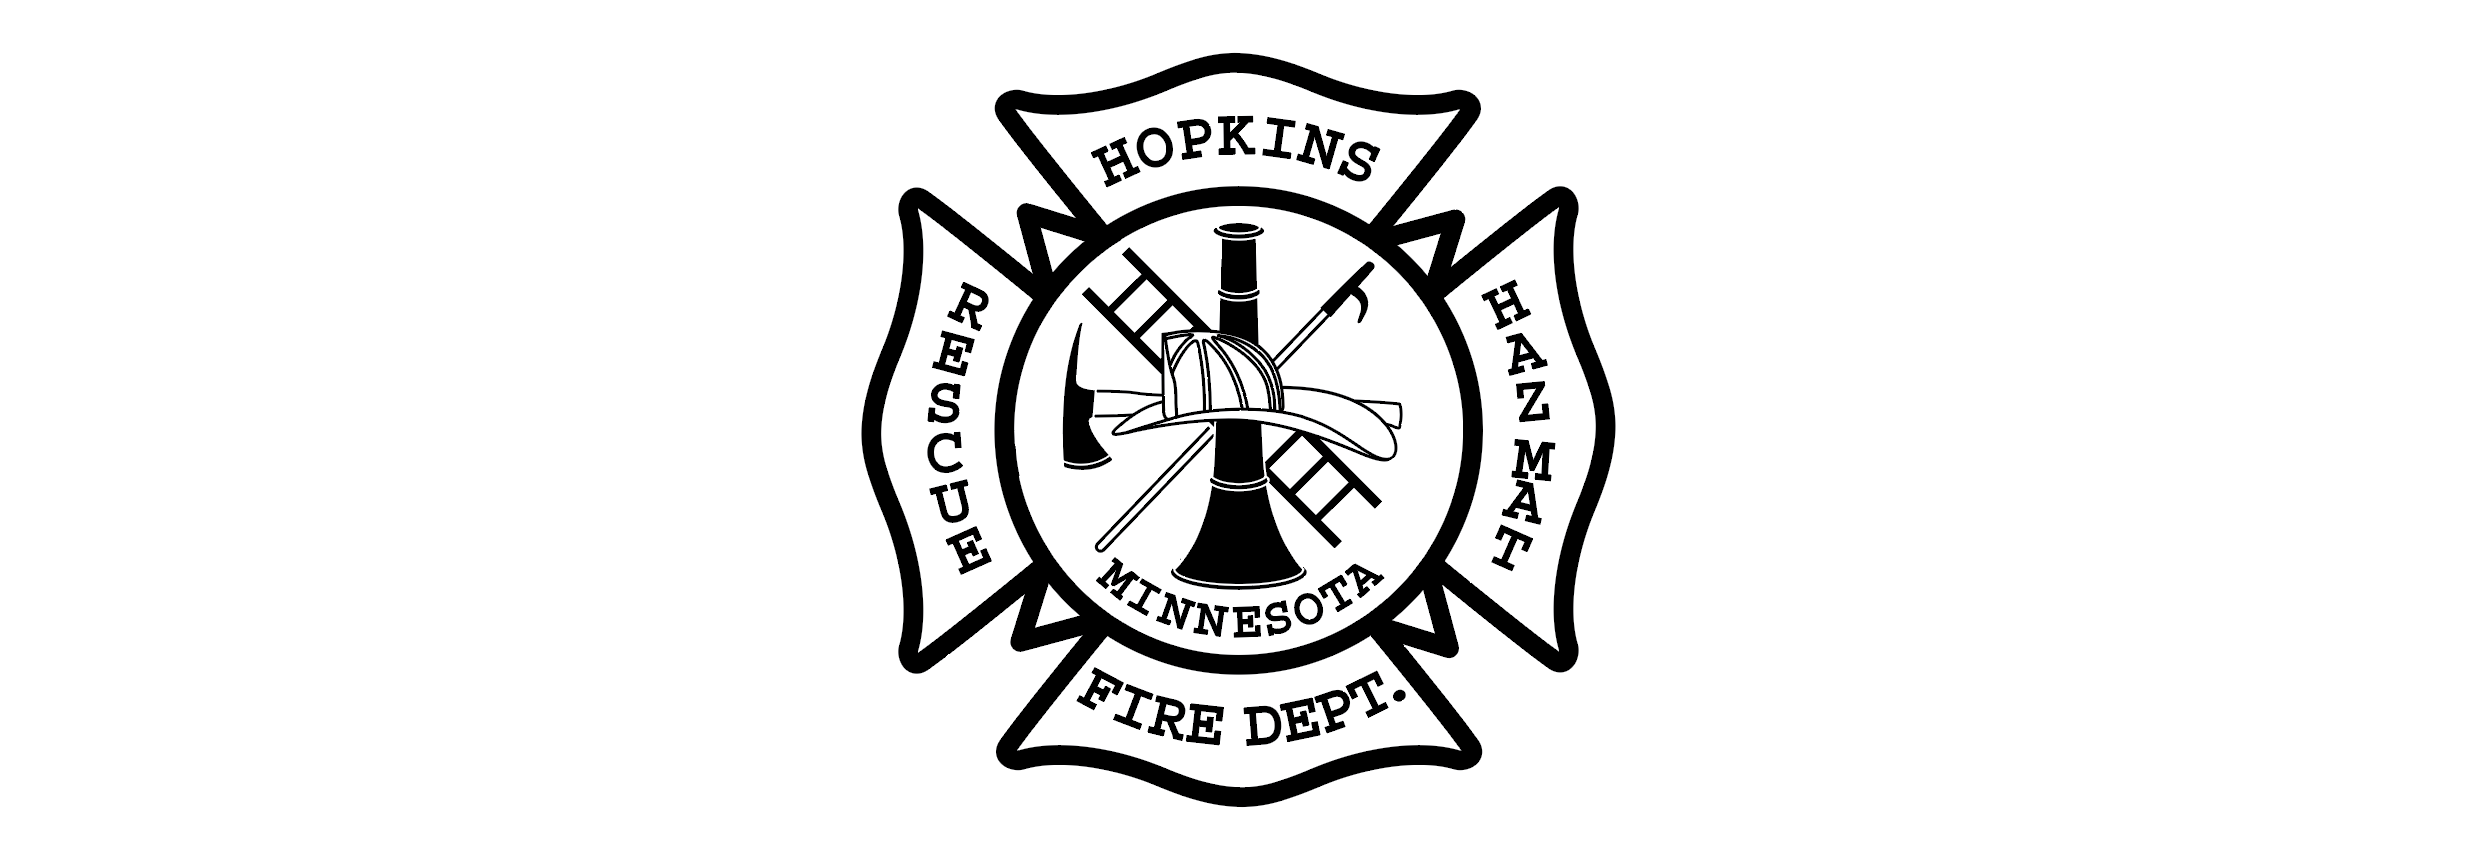 Hopkins Fire Dept. 2021